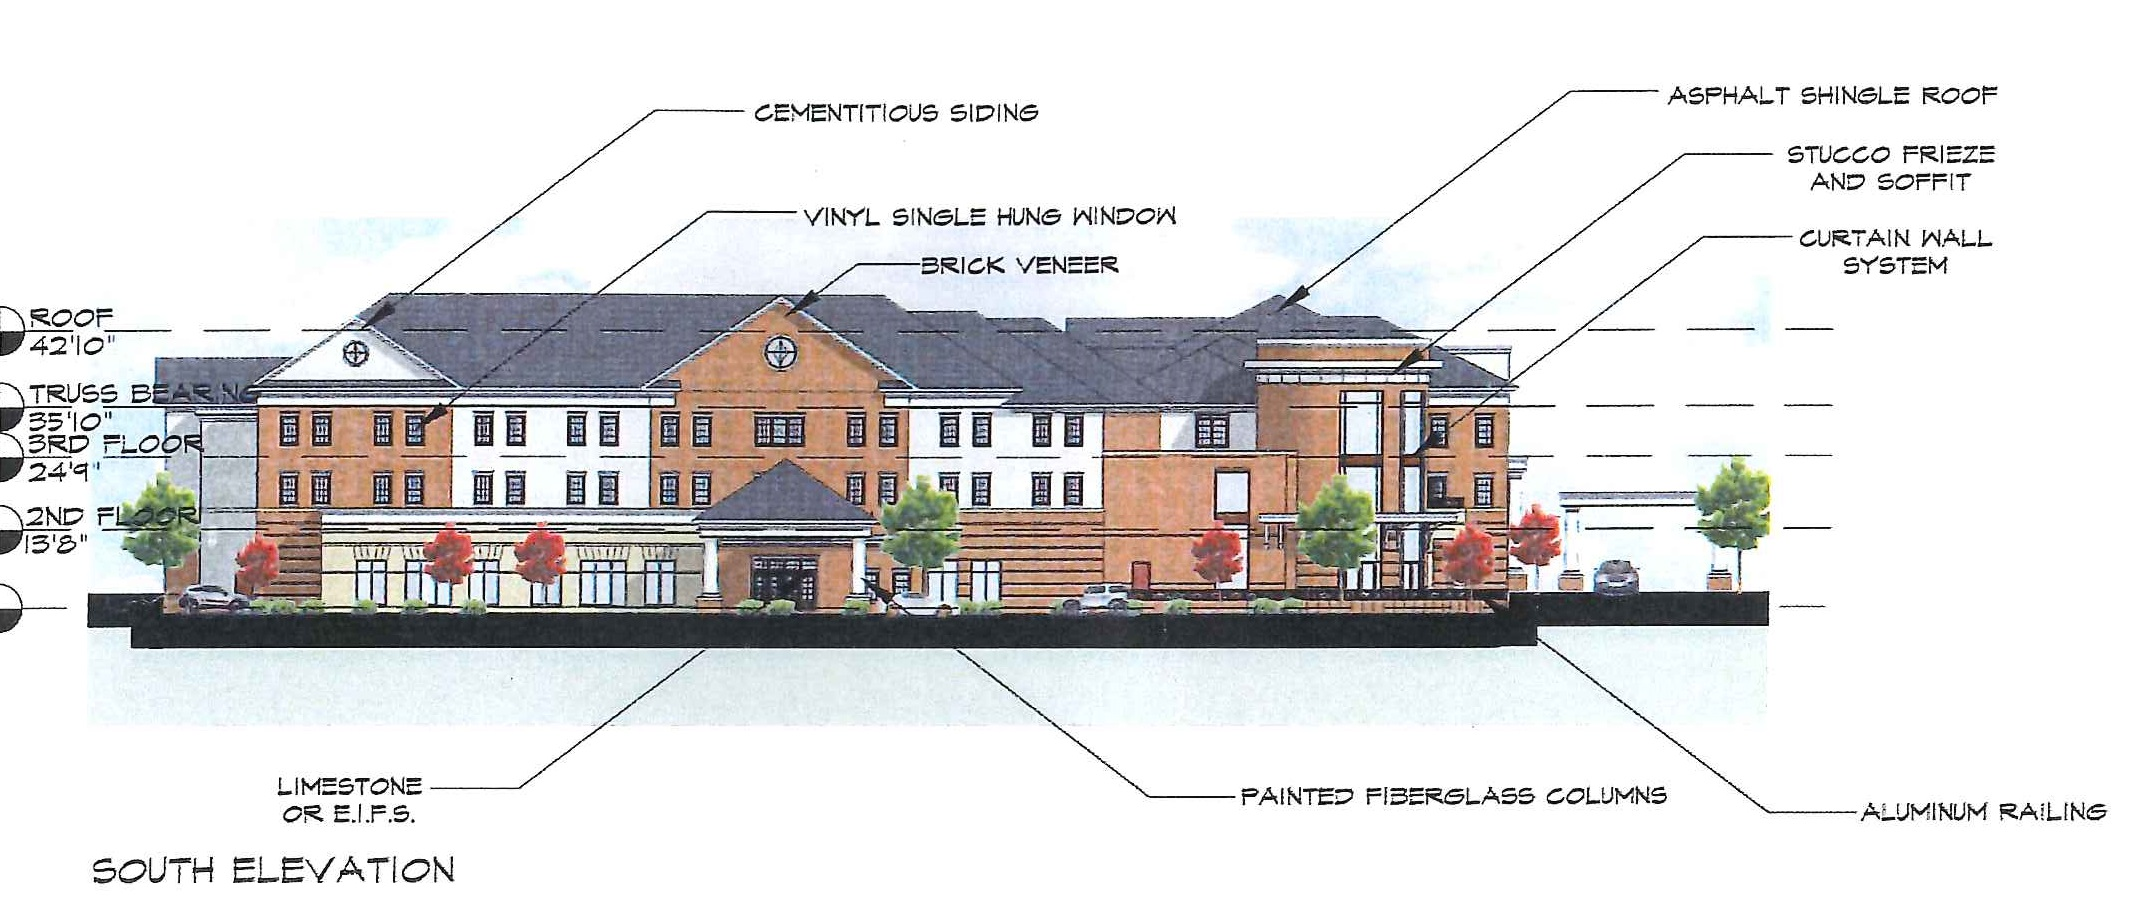 2014-17 Architectural Rendering (3) Front of Inn - facing street.jpg